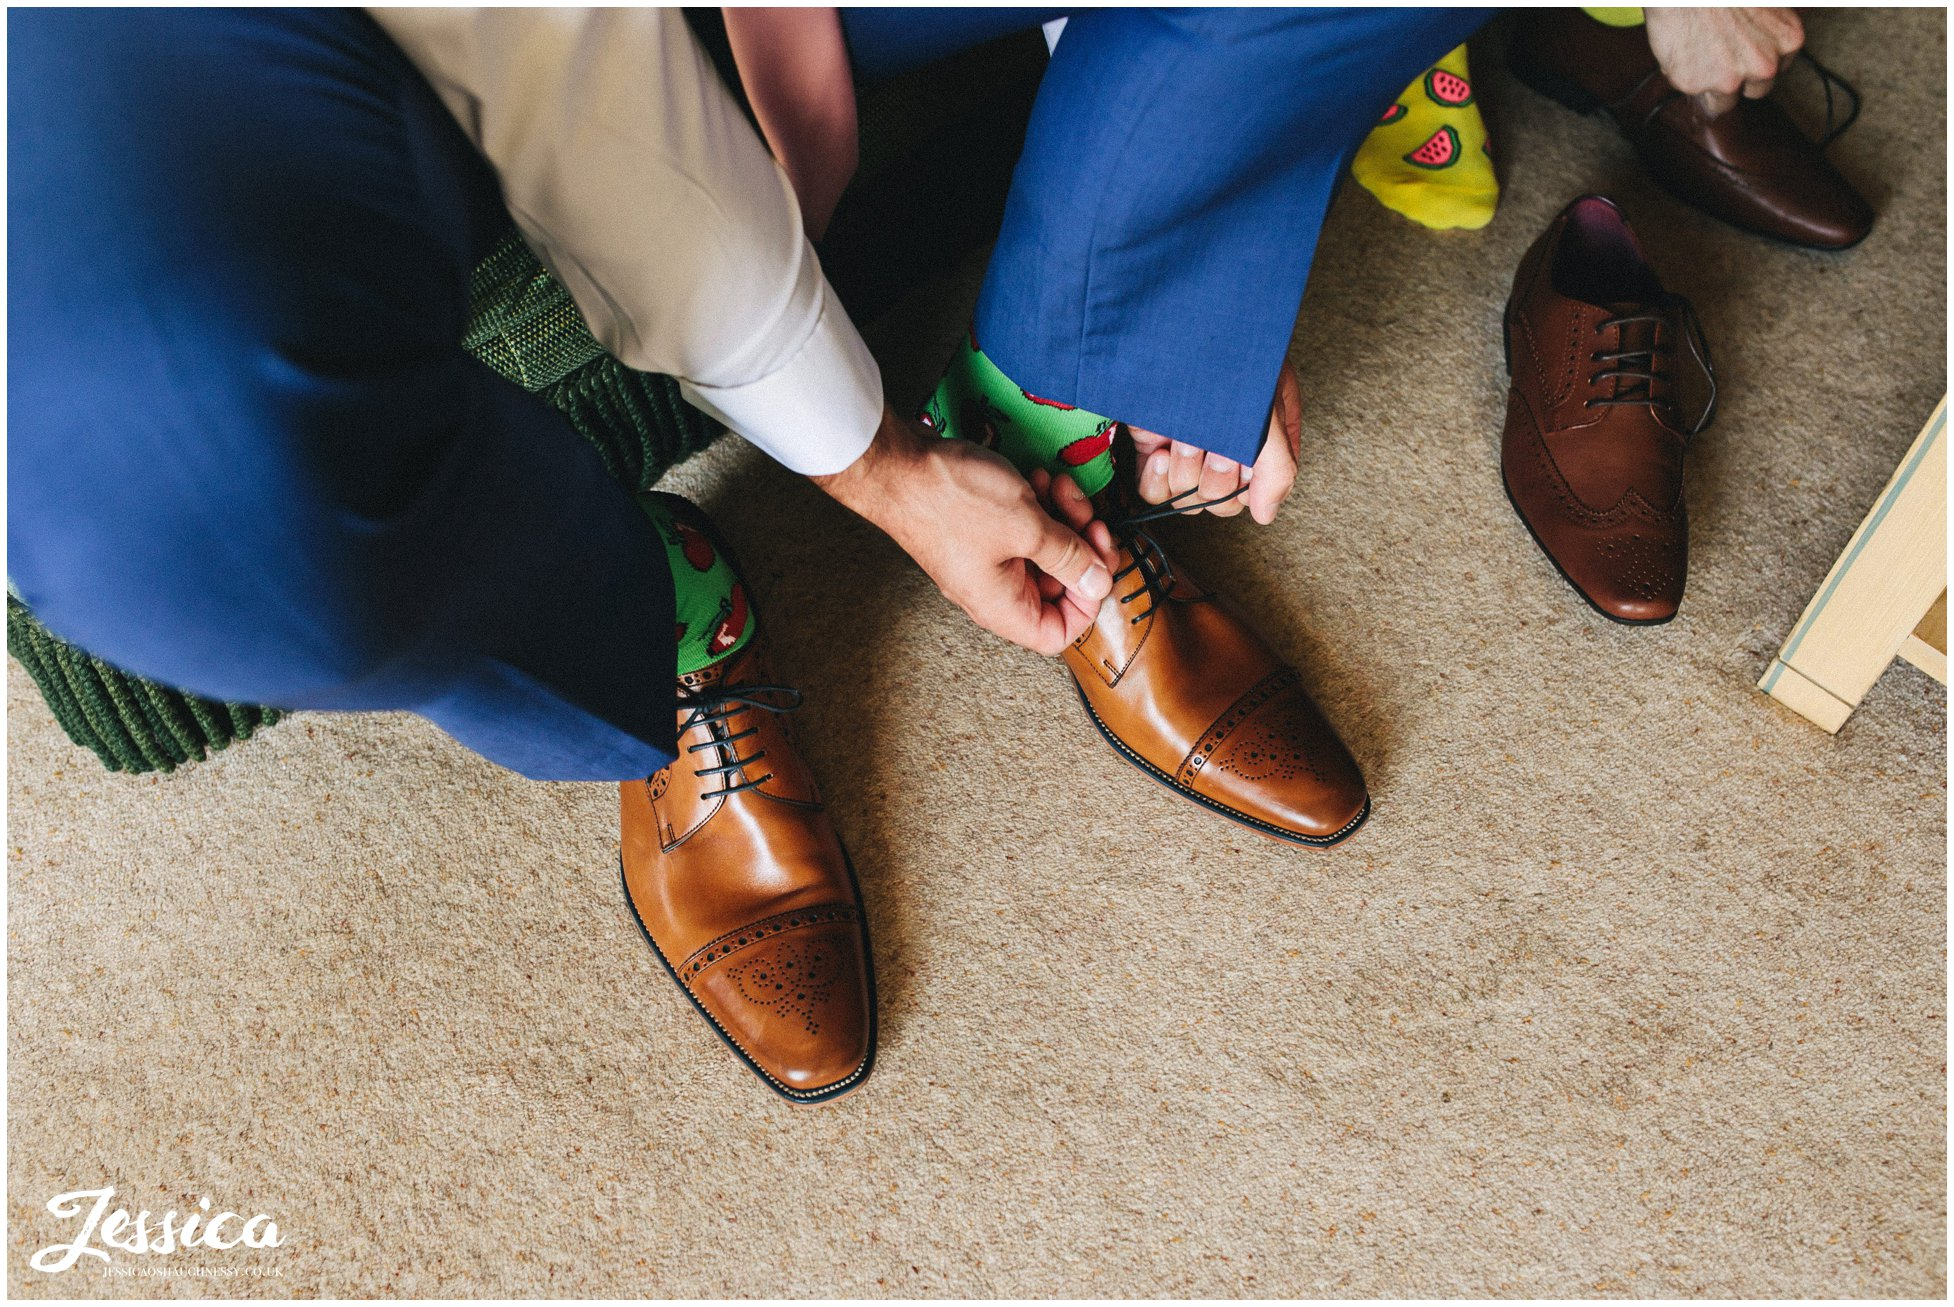 the groom puts on his shoes over brightly coloured socks